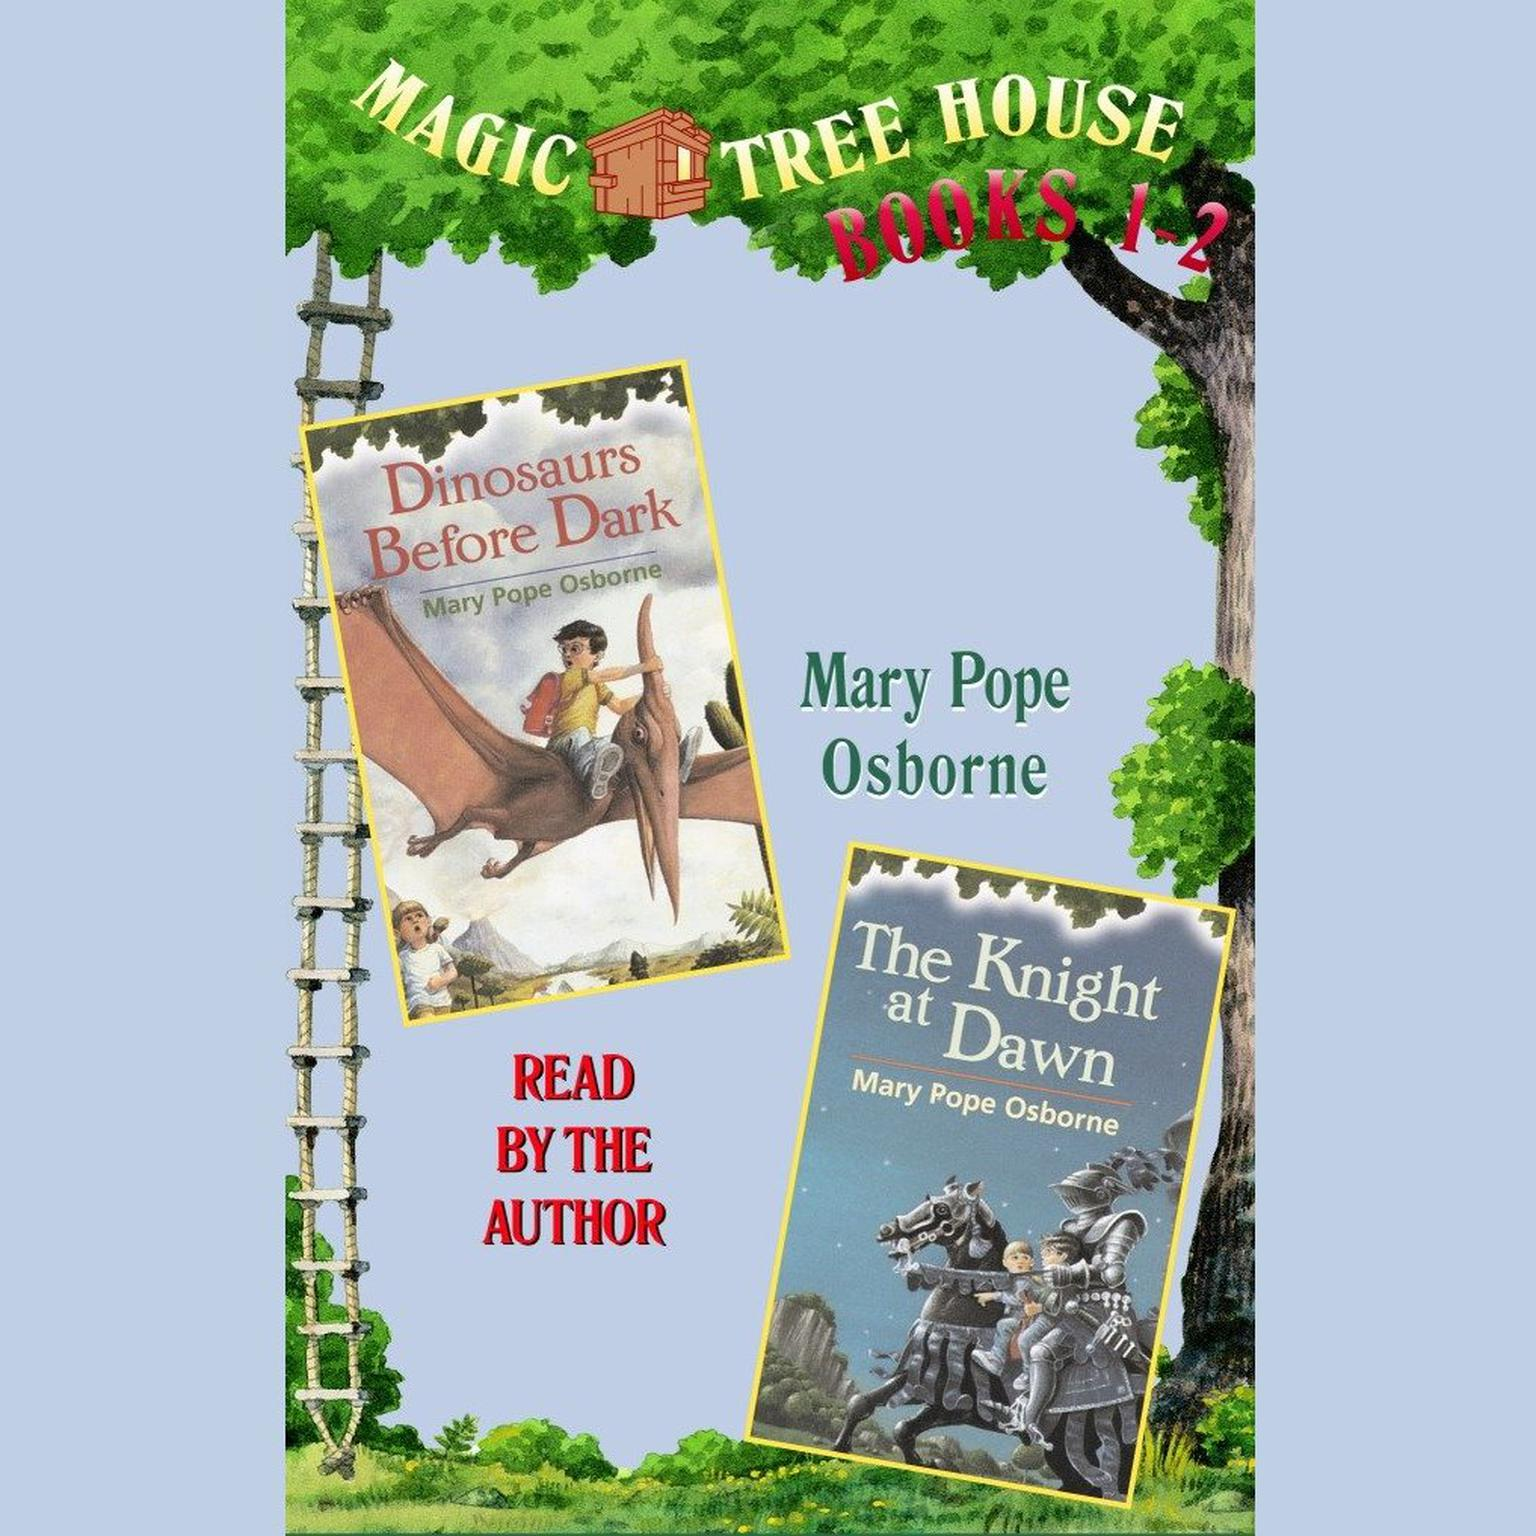 magic tree house book report questions